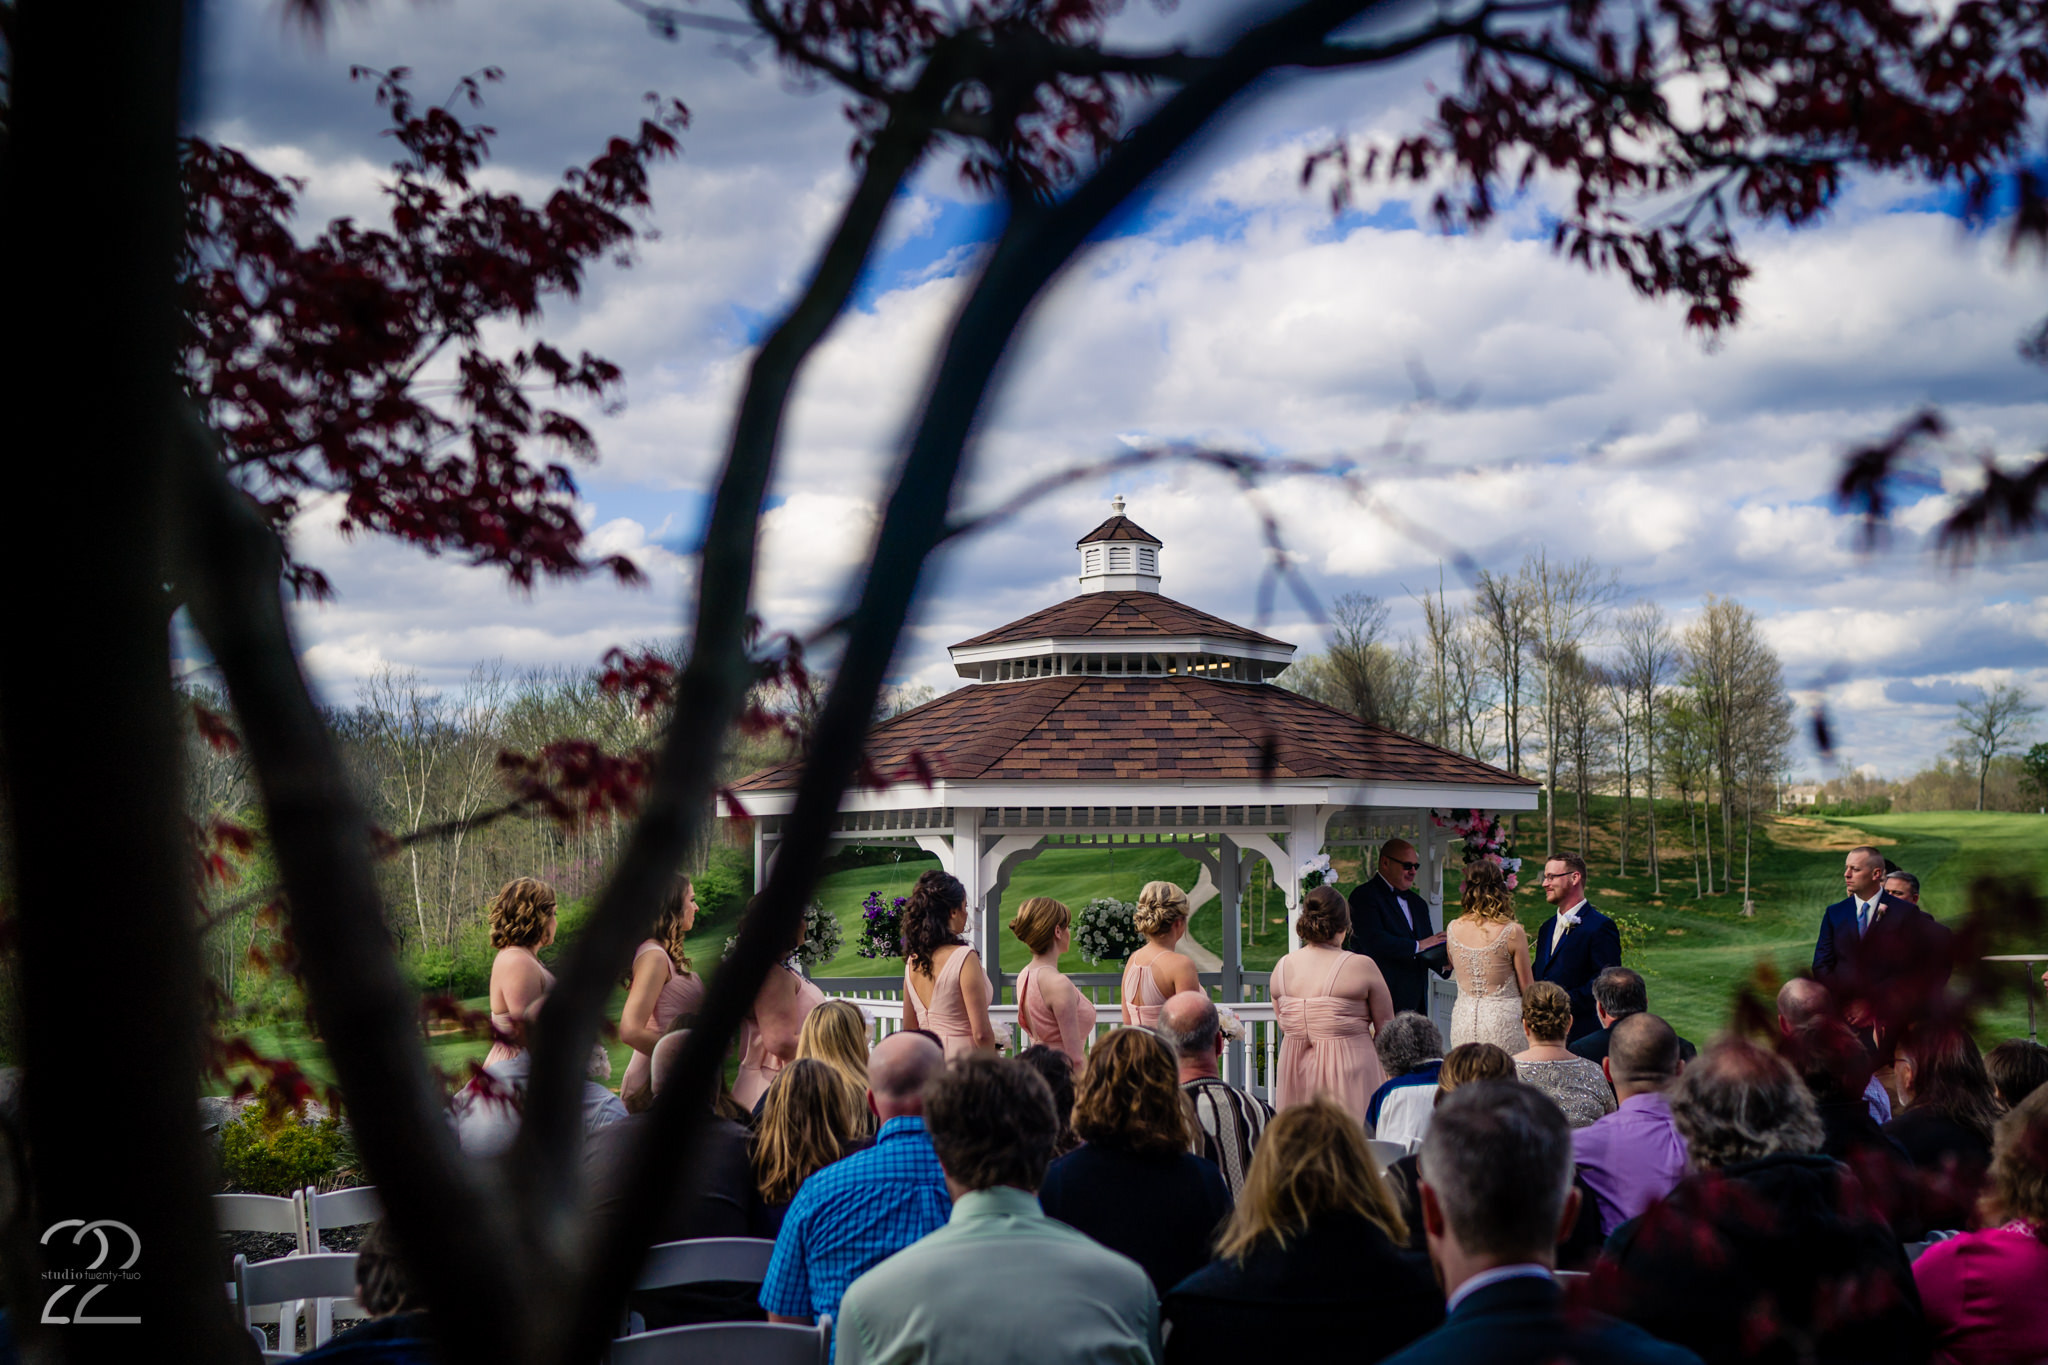 With spring in the air and showing in the trees, Nick and Erica had a beautiful Cincinnati outdoor wedding venue in Aston Oaks Golf Club. As their closest friends and family members were there to celebrate with them, they said their wedding vows and began their lives together as husband and wife.